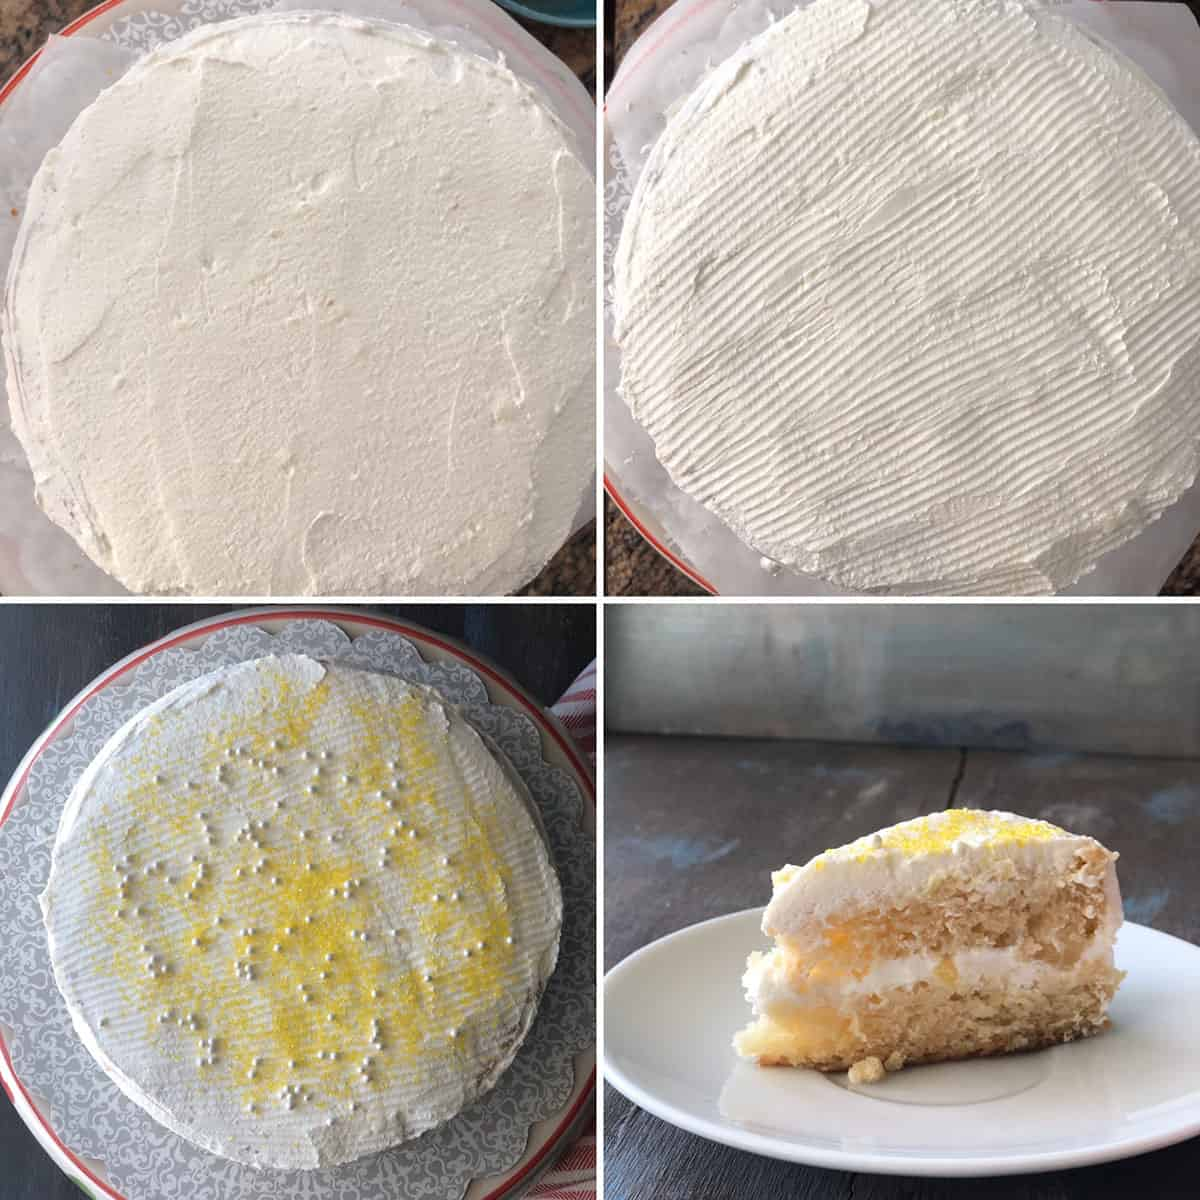 Step by step photos showing the assembling of pineapple pastry